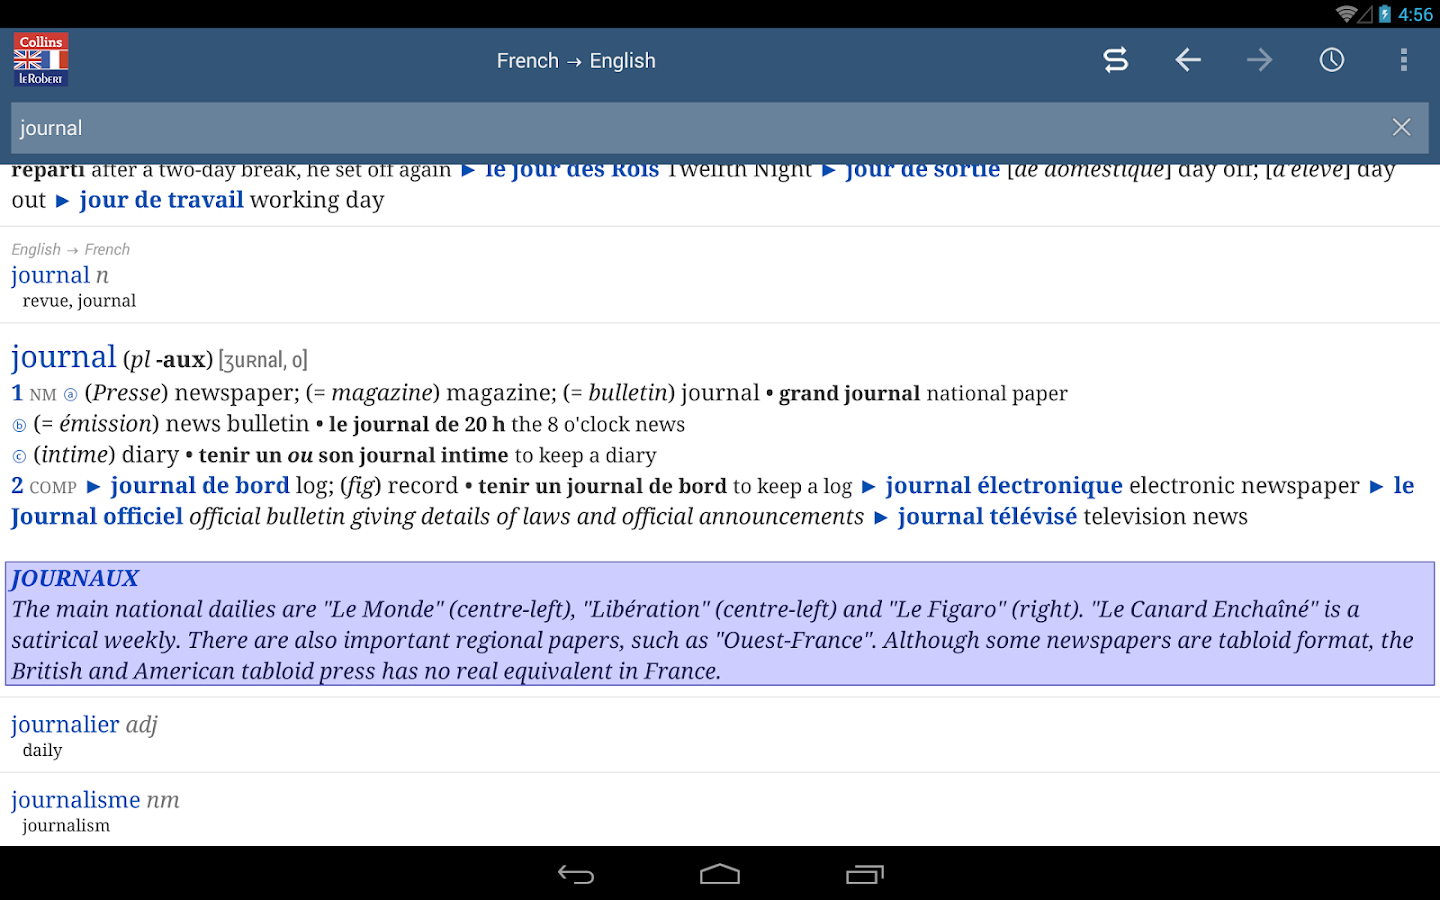 Bedroom english french dictionary wordreference com - Collins Robert Concise French Screenshot